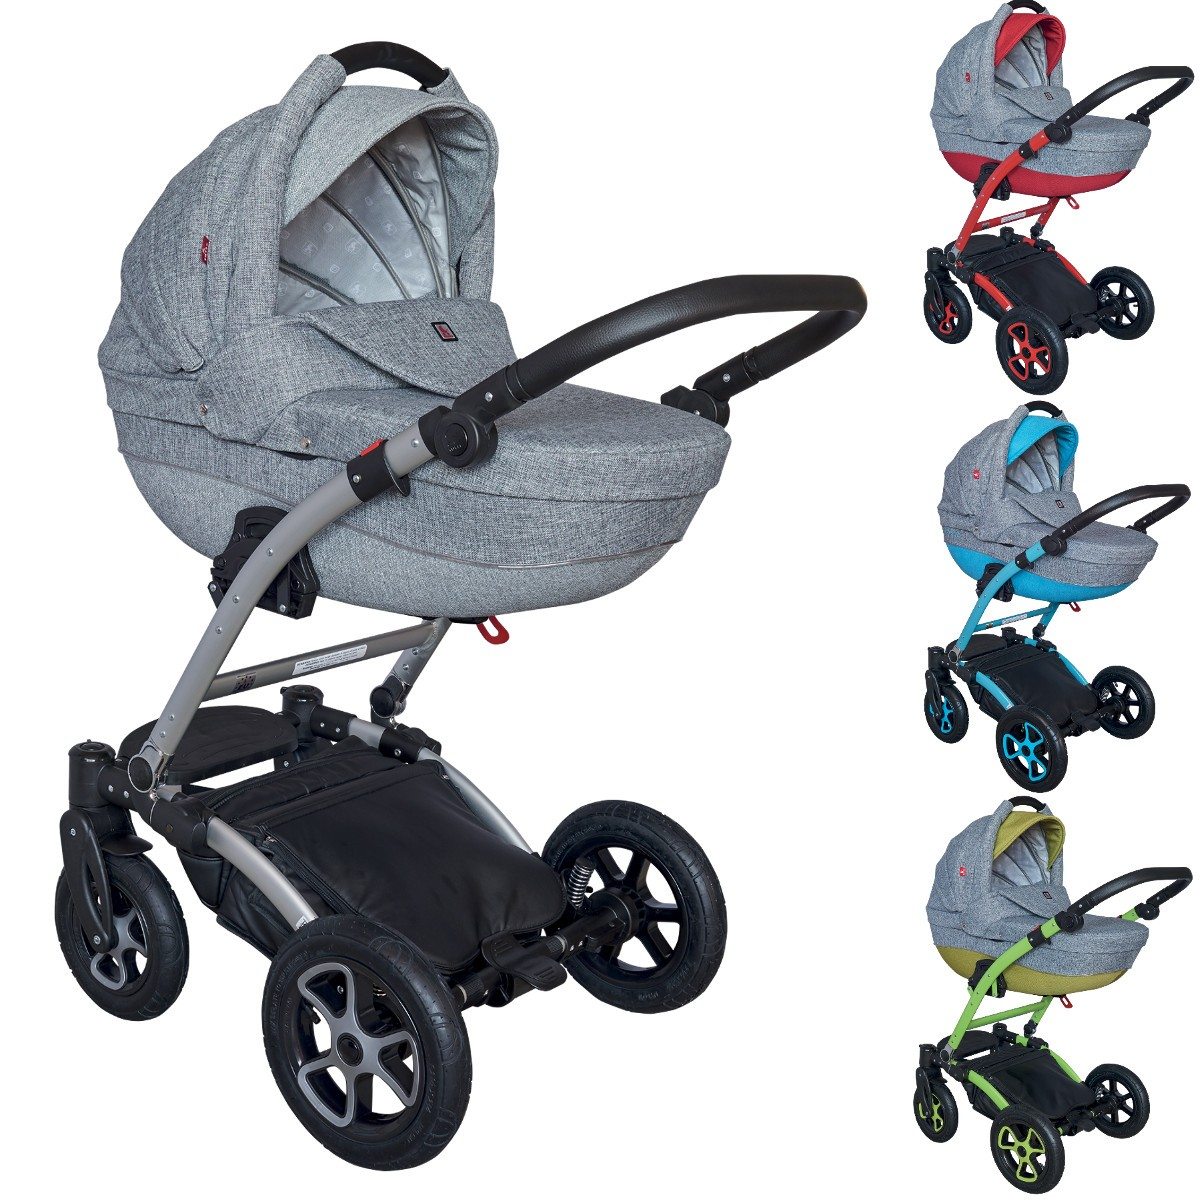 torero kombi kinderwagen 2in1 mit babywanne sportwagenaufsatz buggy oder 3in1 babyschale. Black Bedroom Furniture Sets. Home Design Ideas